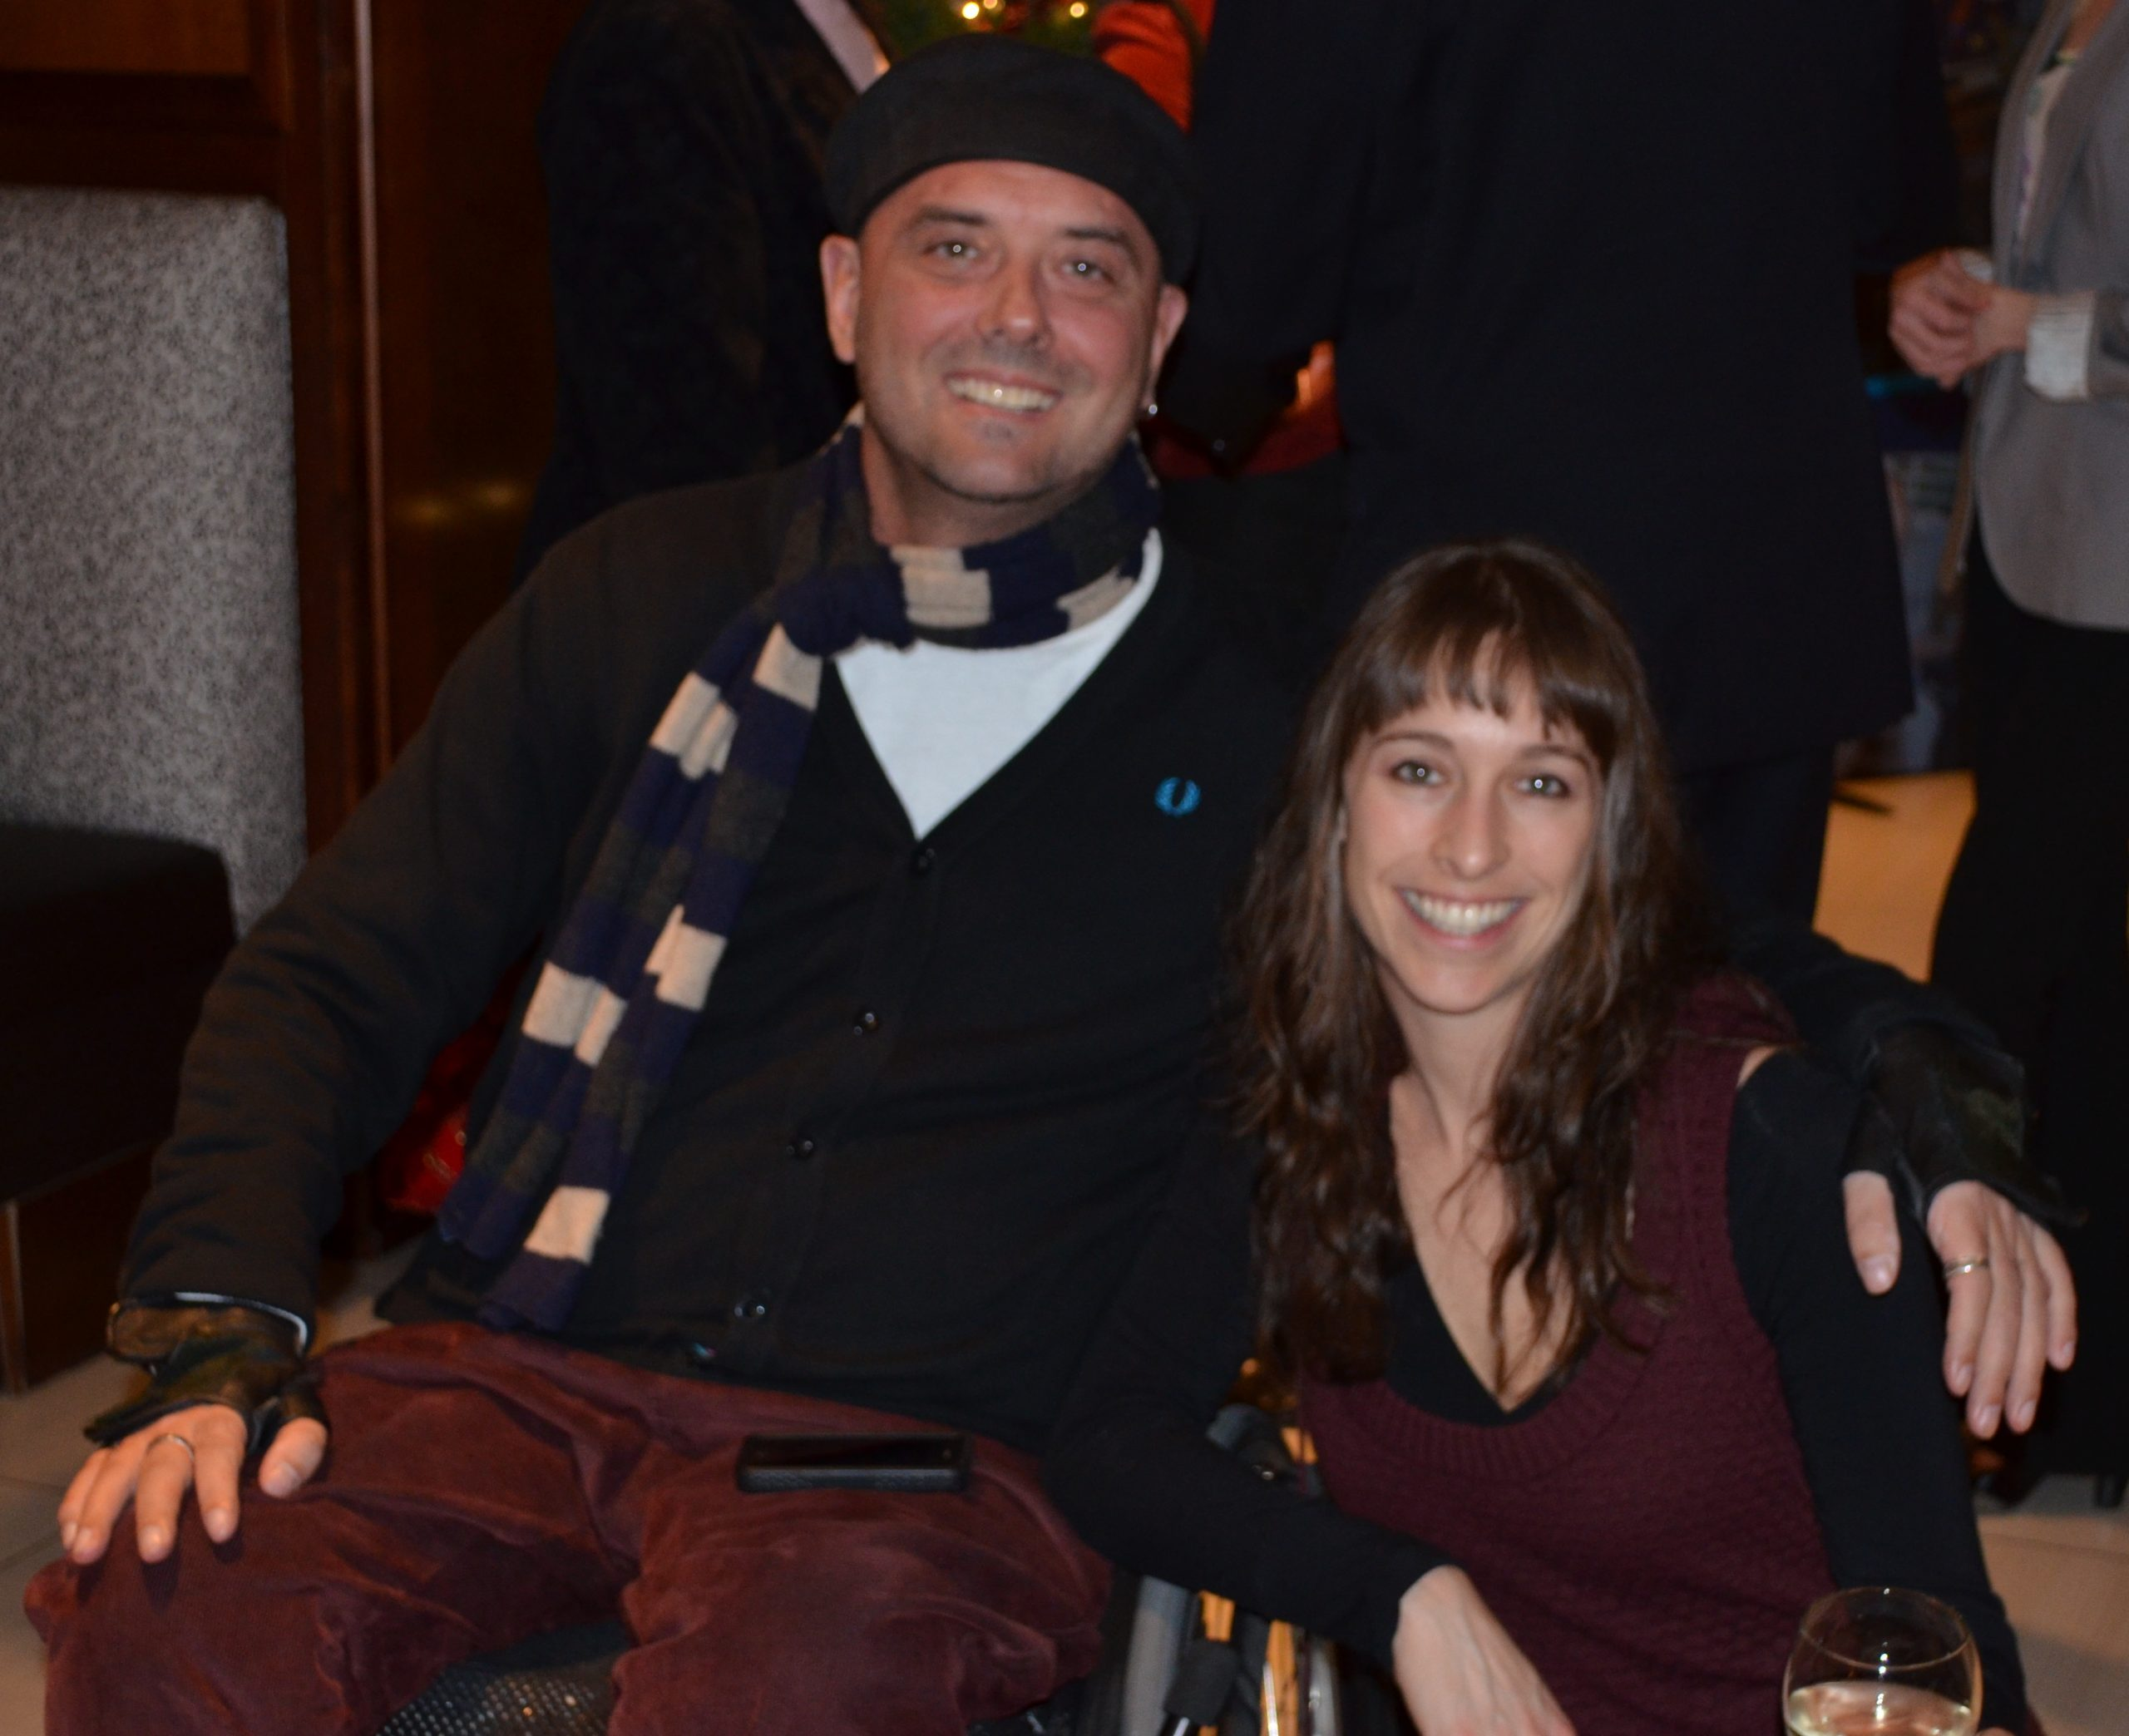 Brad in cap and striped scarf at holiday party pictured with Shelley Milstein